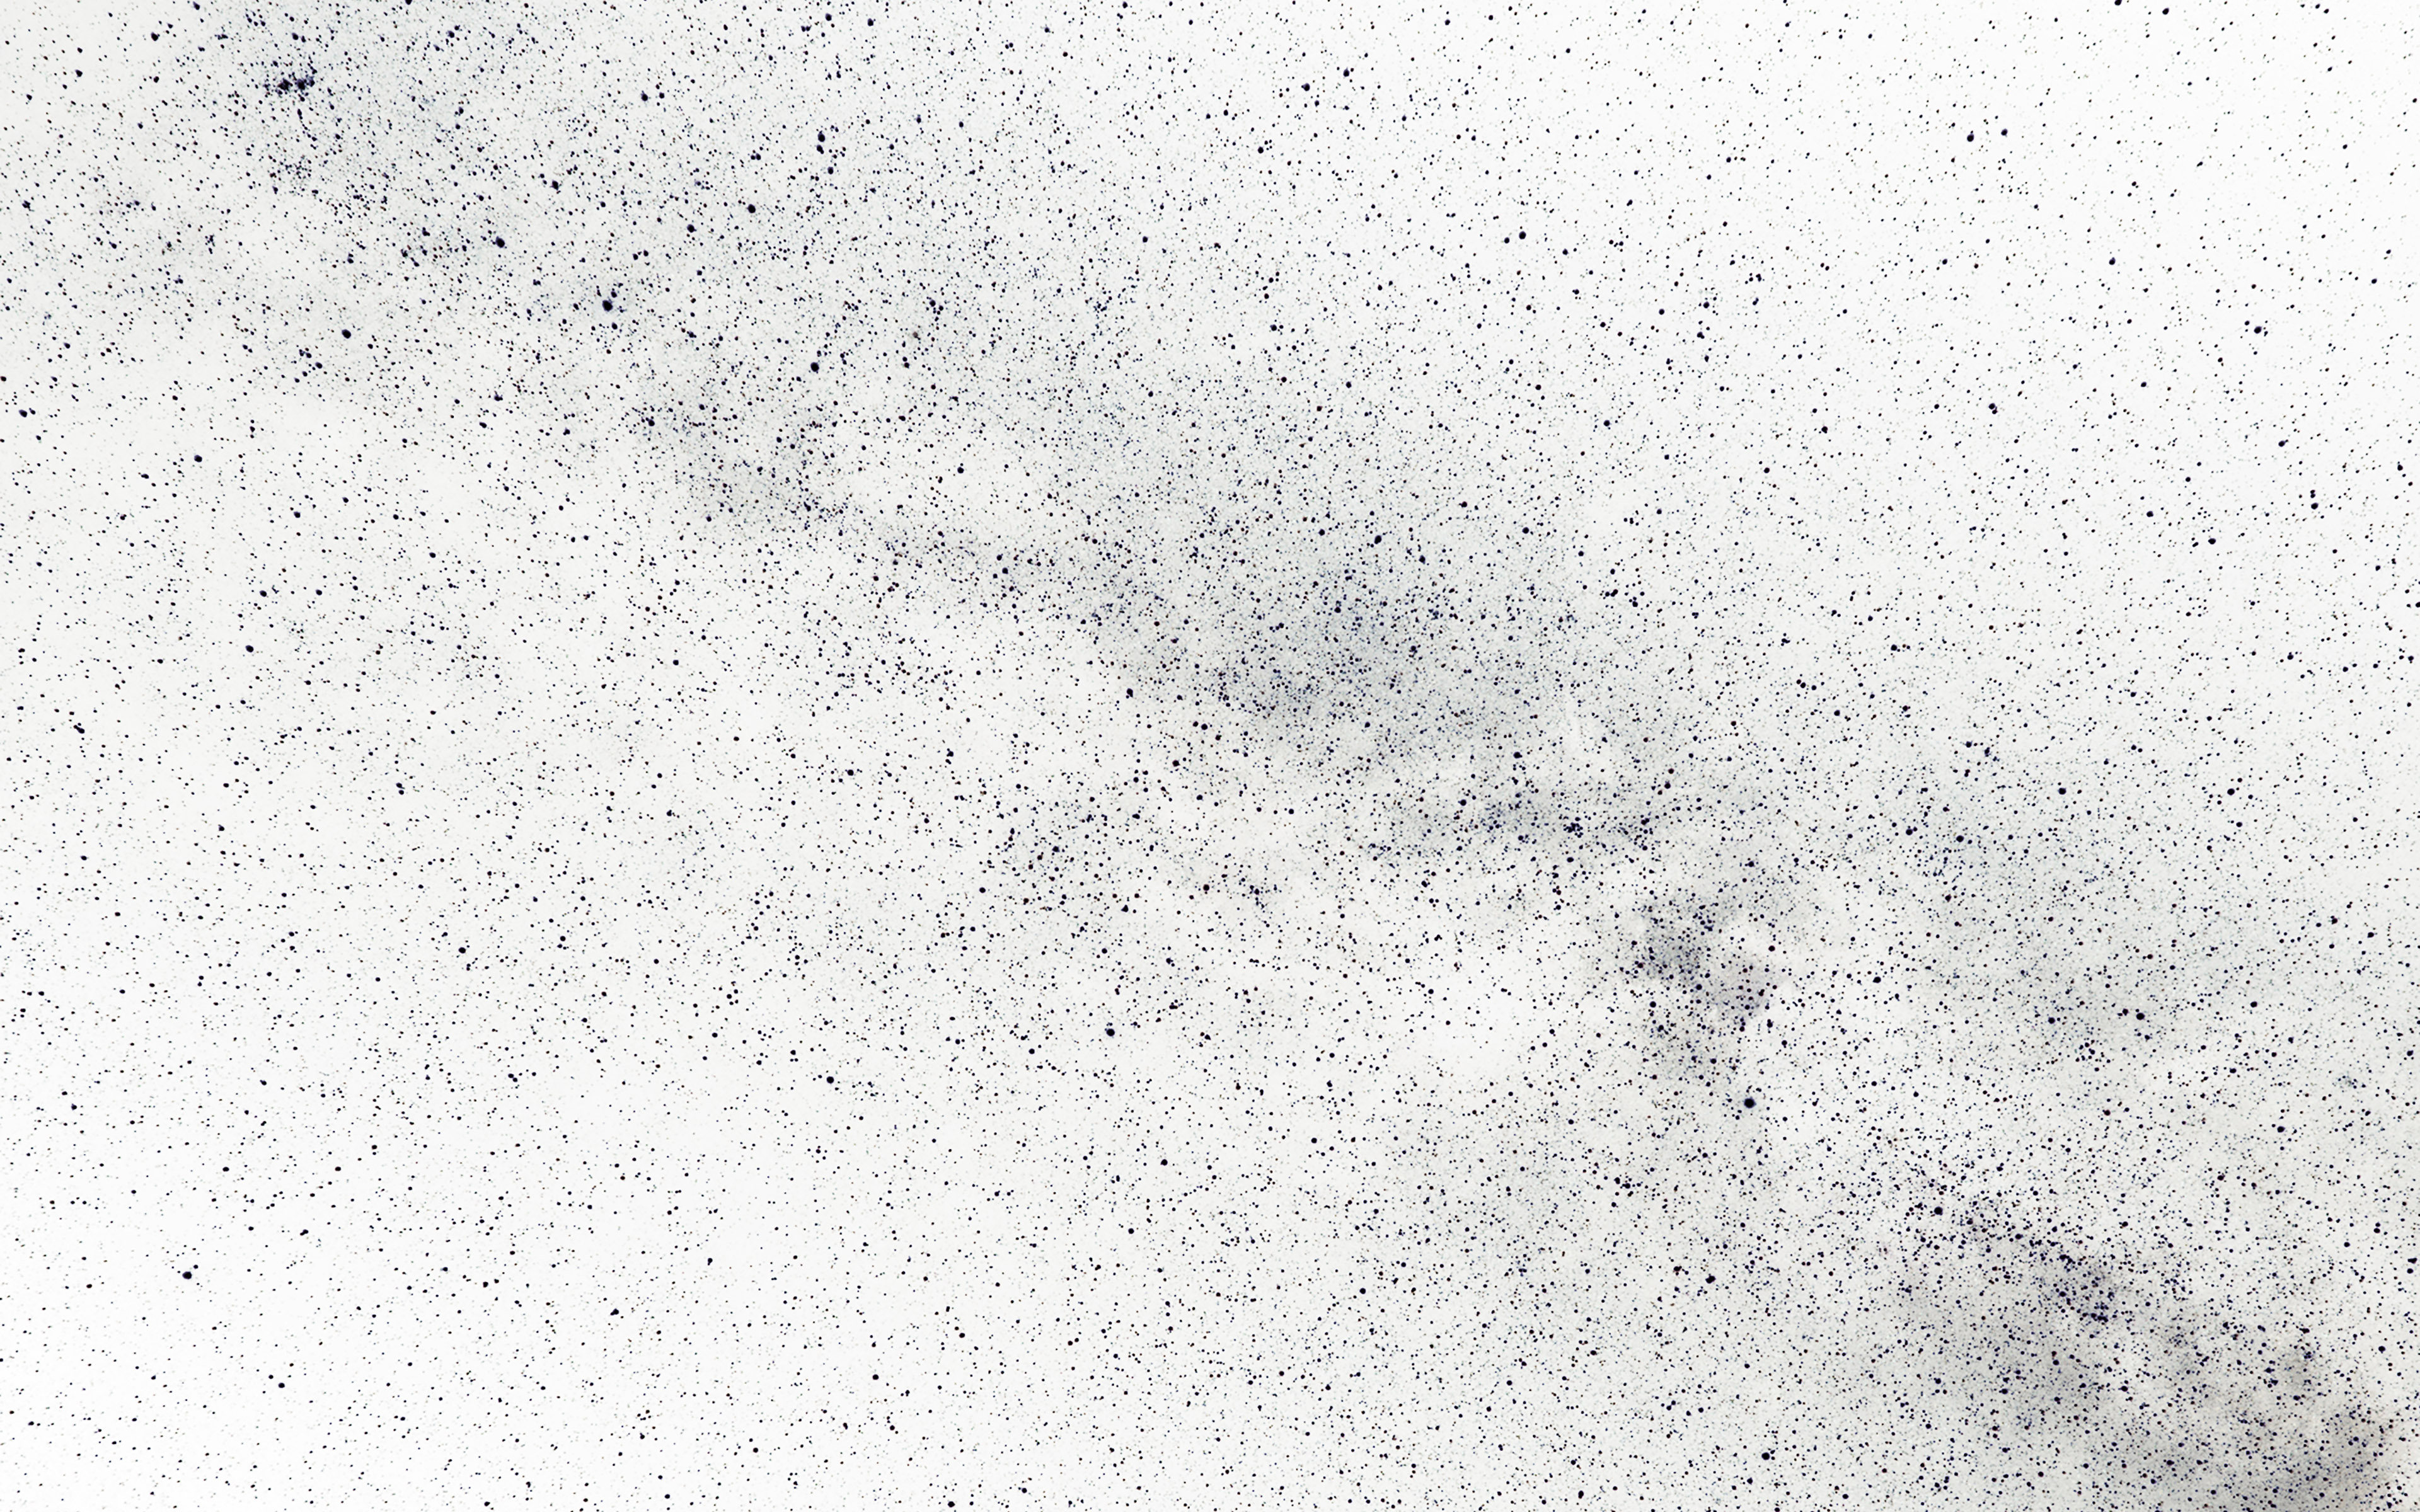 Fall Aesthetic Wallpaper Md64 Star White Space Galaxy Papers Co